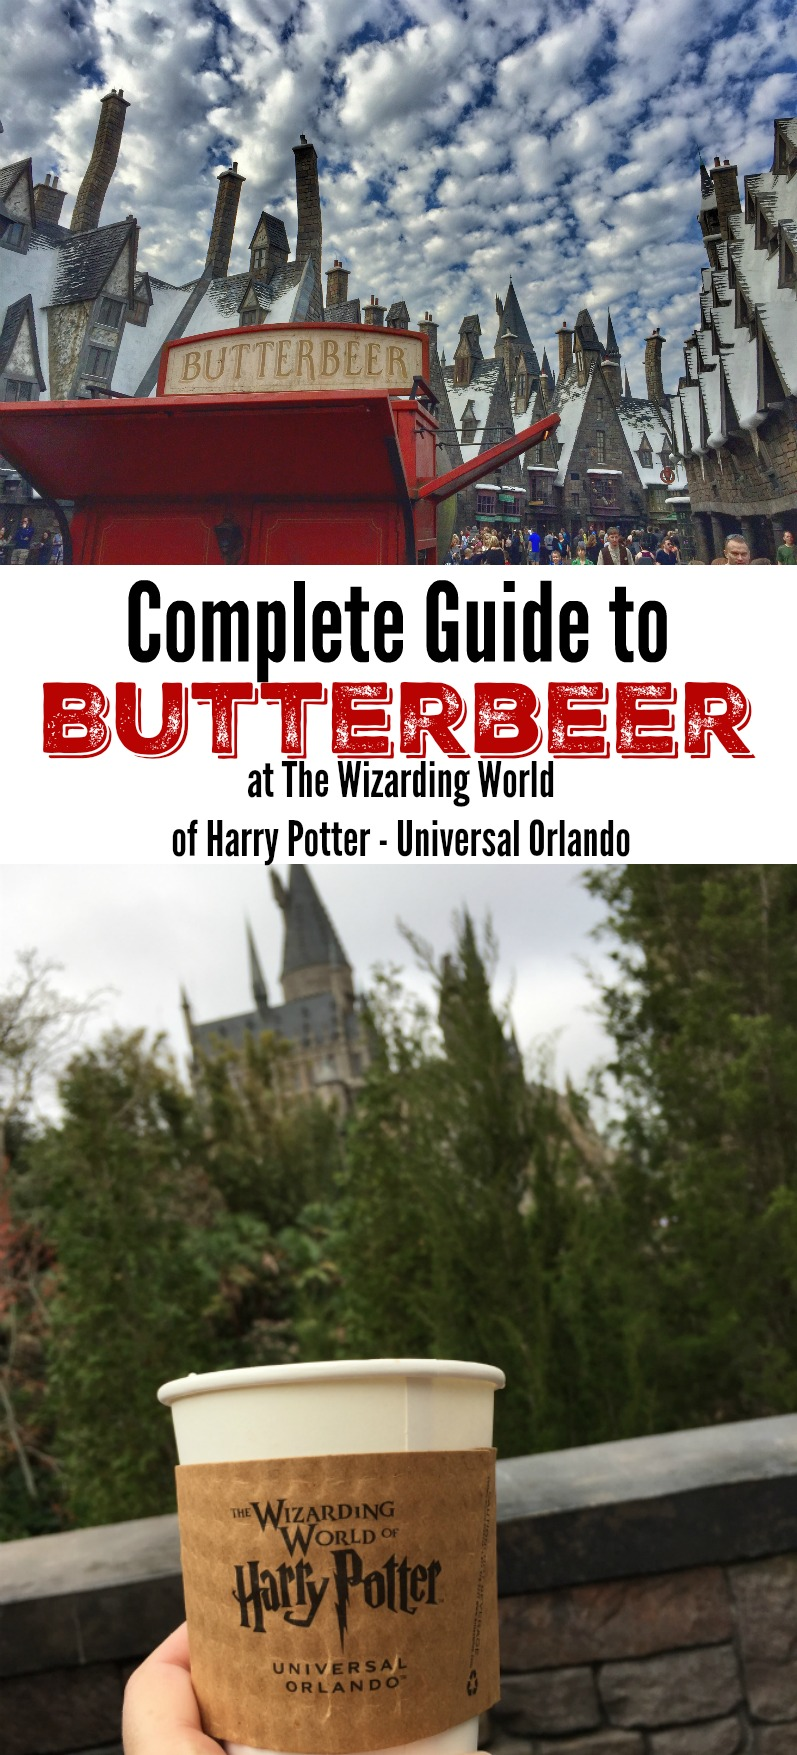 Complete Guide to Butterbeer at the Wizarding World of Harry Potter Universal Orlando